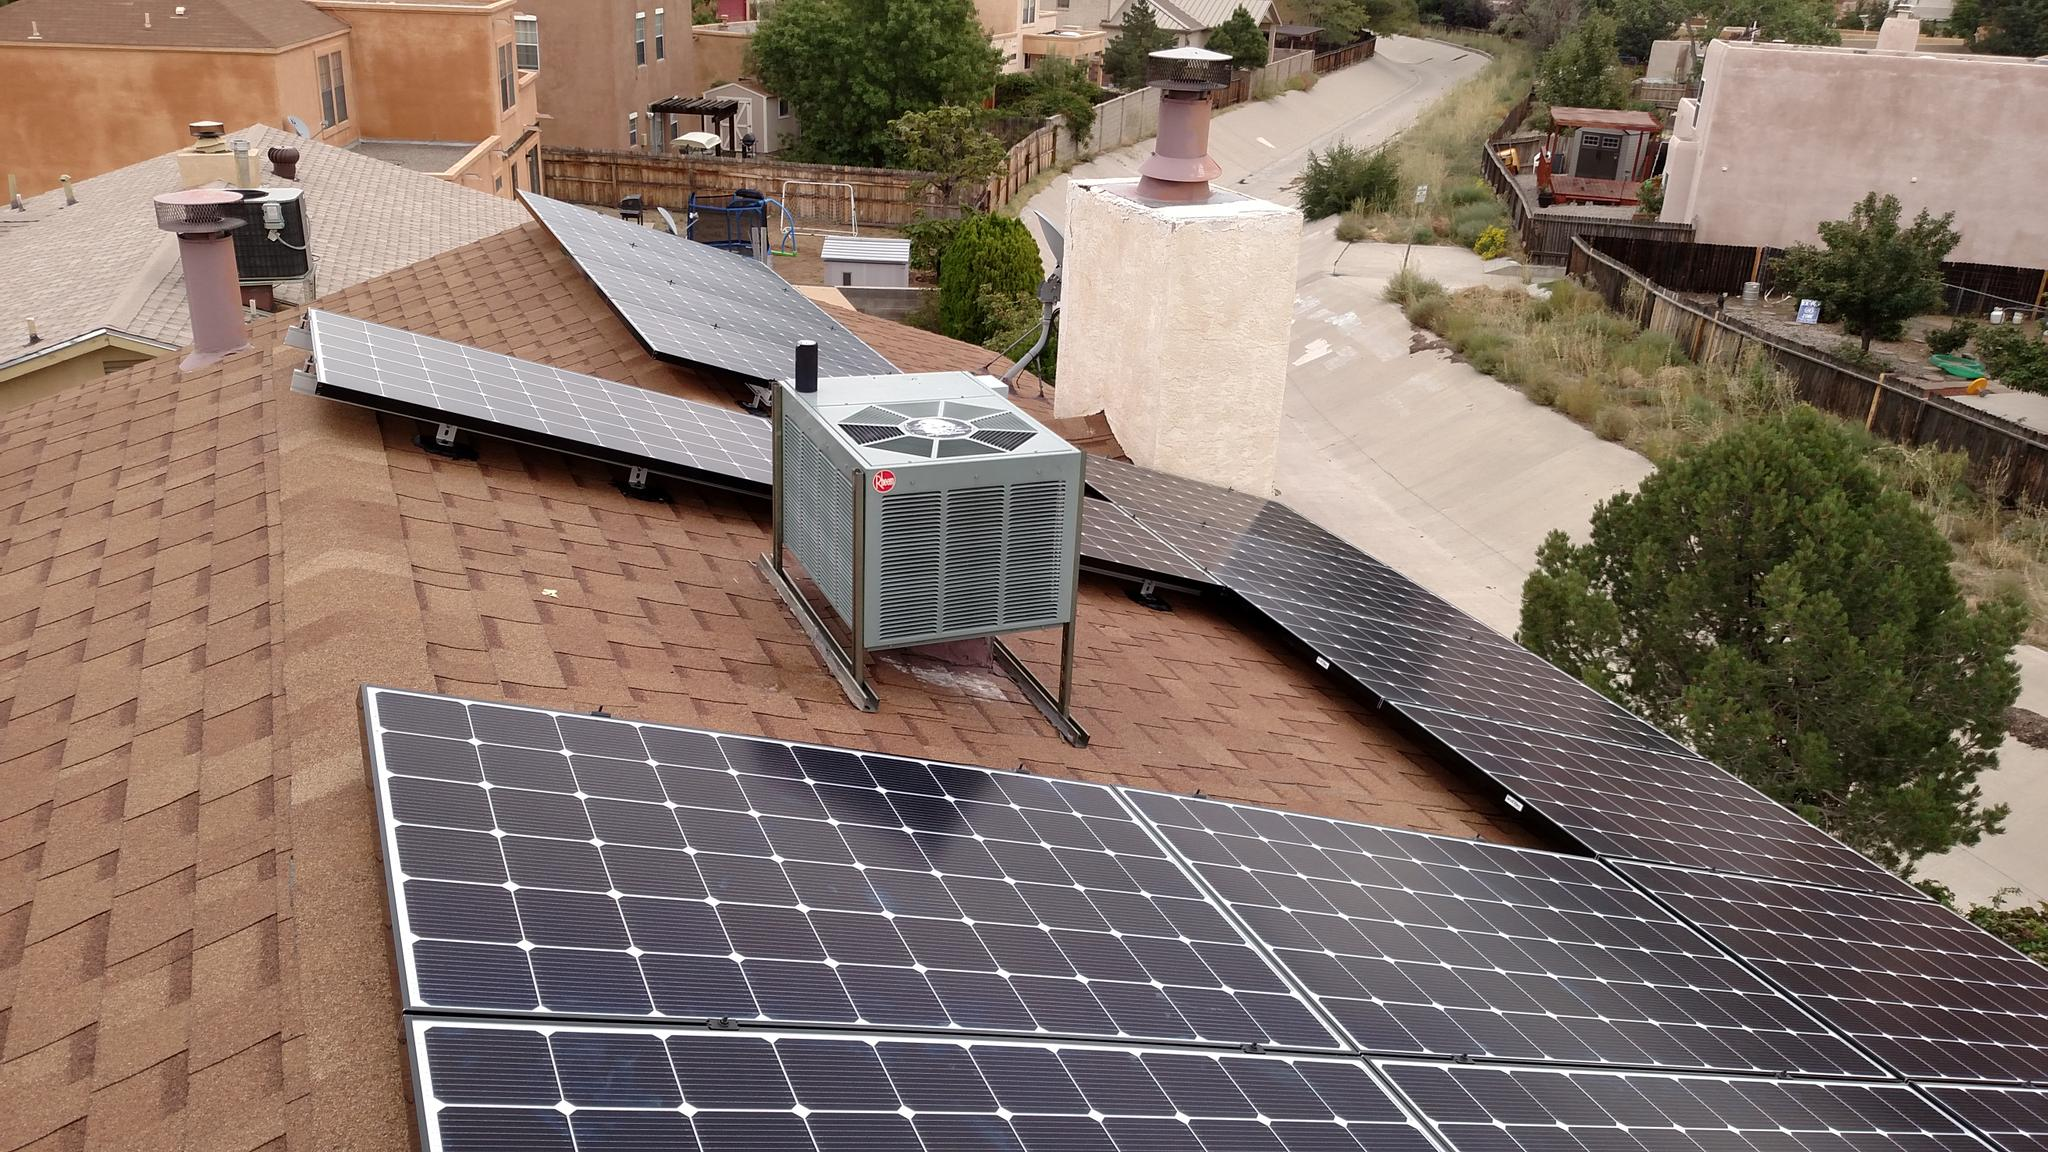 Enchanted Solar Profile And Reviews 2020 Energysage